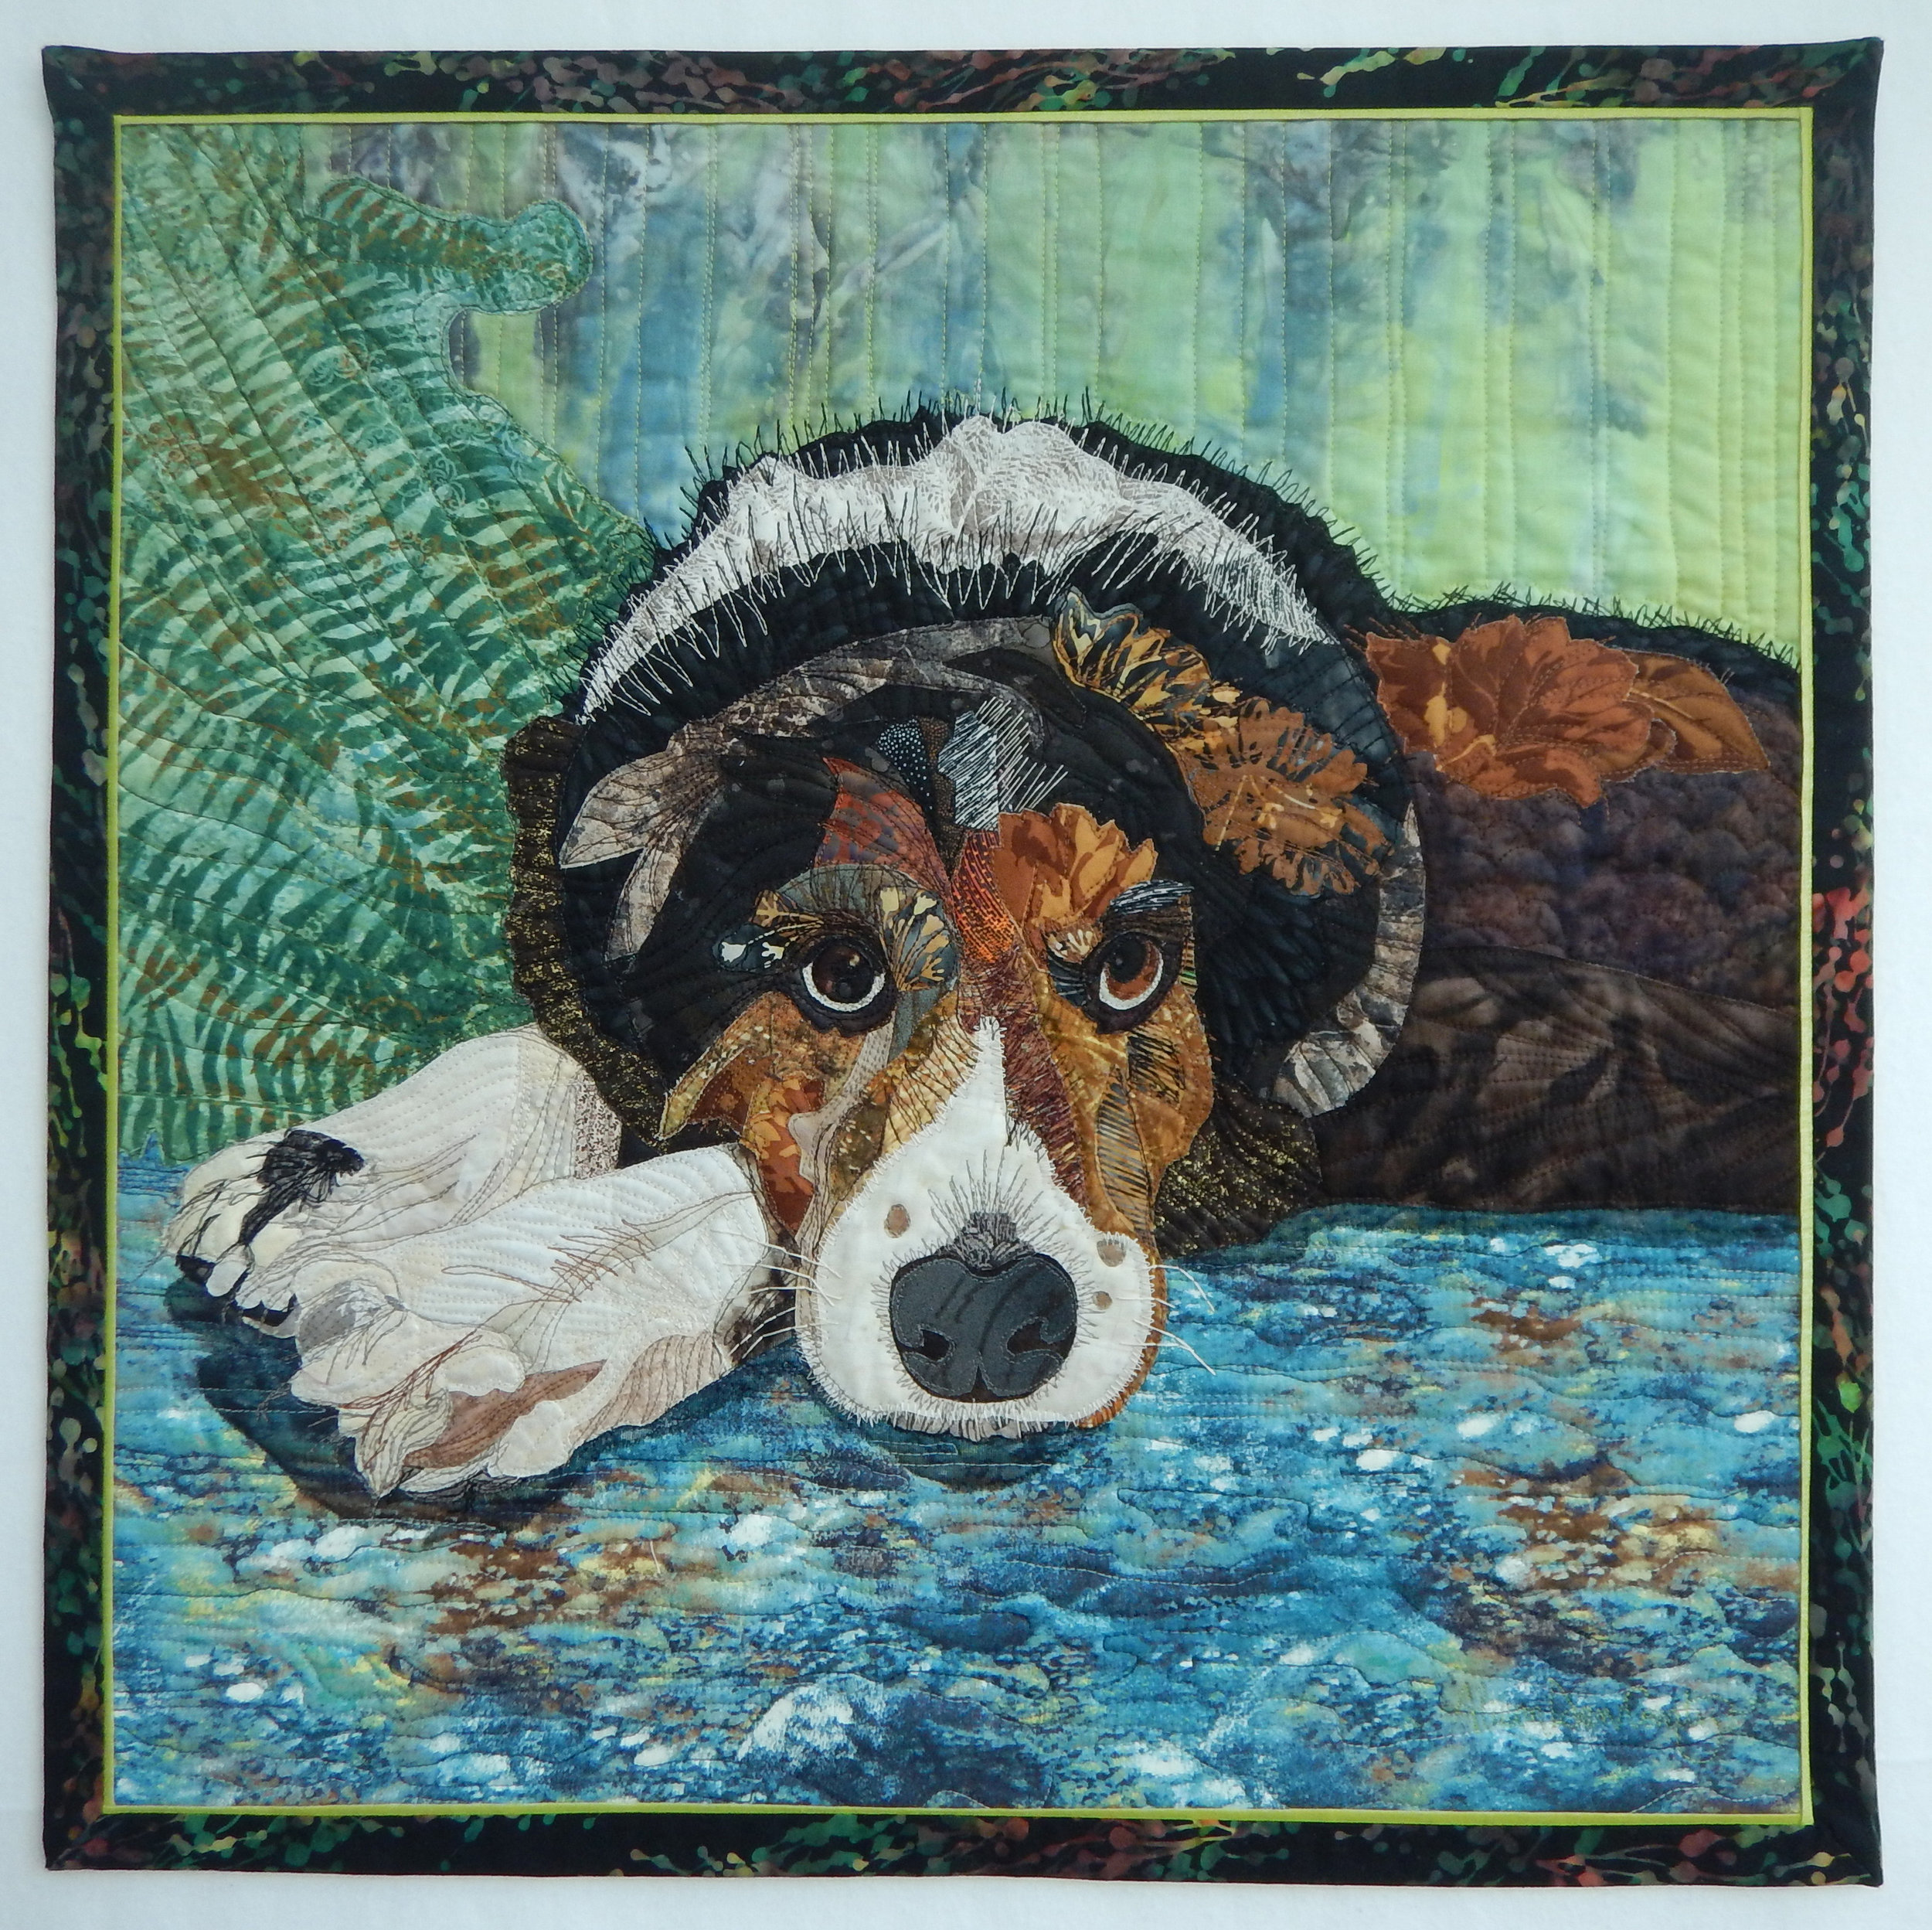 """Leo - 23"""" x 23""""Accepted into the Canadian Quilters' Association National Juried Show 2016Private Collection - Calgary, ABWith much meaning and gratitude this portrait was brought to life. A physician and friend was intrigued with my previous work using fabric as an art medium and she asked me to make a portrait of her Border Collie, Leo. He is a beloved family pet who is in his twilight years. It was my goal to communicate his loyal and gentle spirit in fabric. For me, he came alive when I got the eyes right!"""